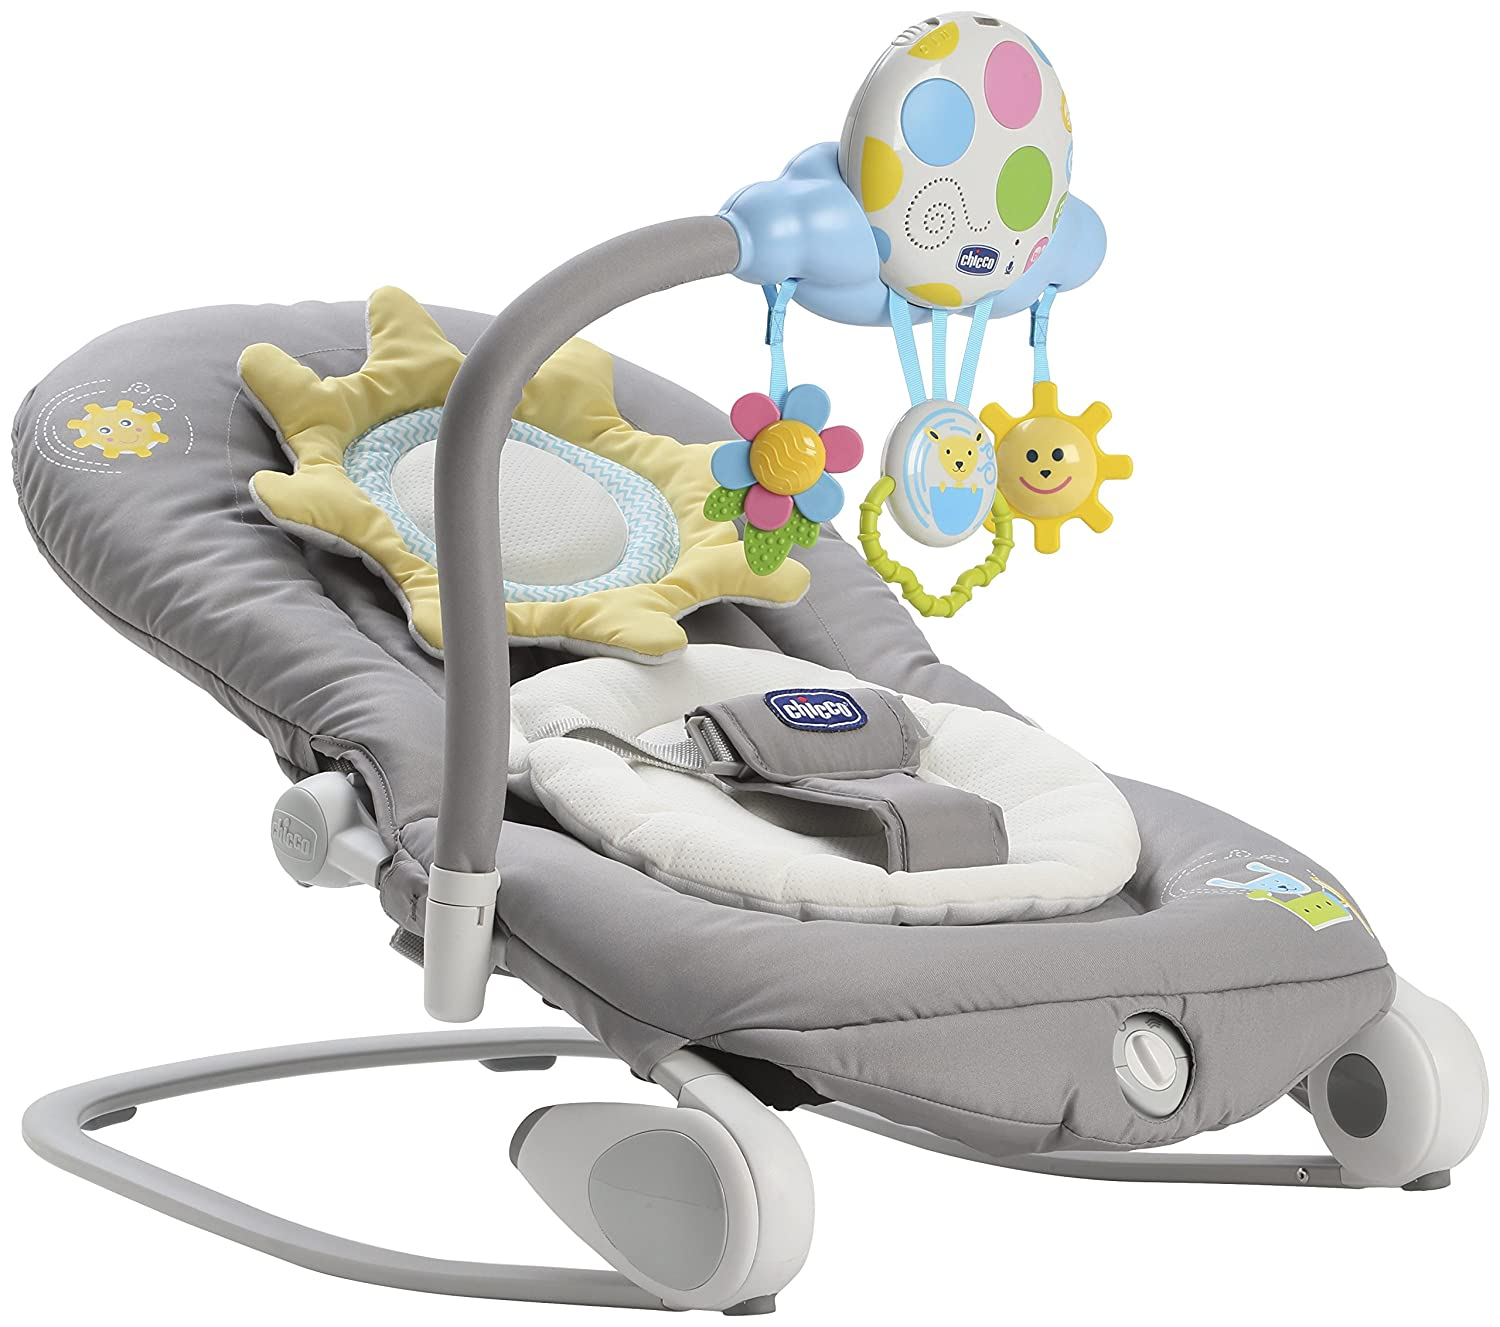 Chicco Balloon Baby Bouncer, Dark Grey ARTSANA UK LTD 05079282400930